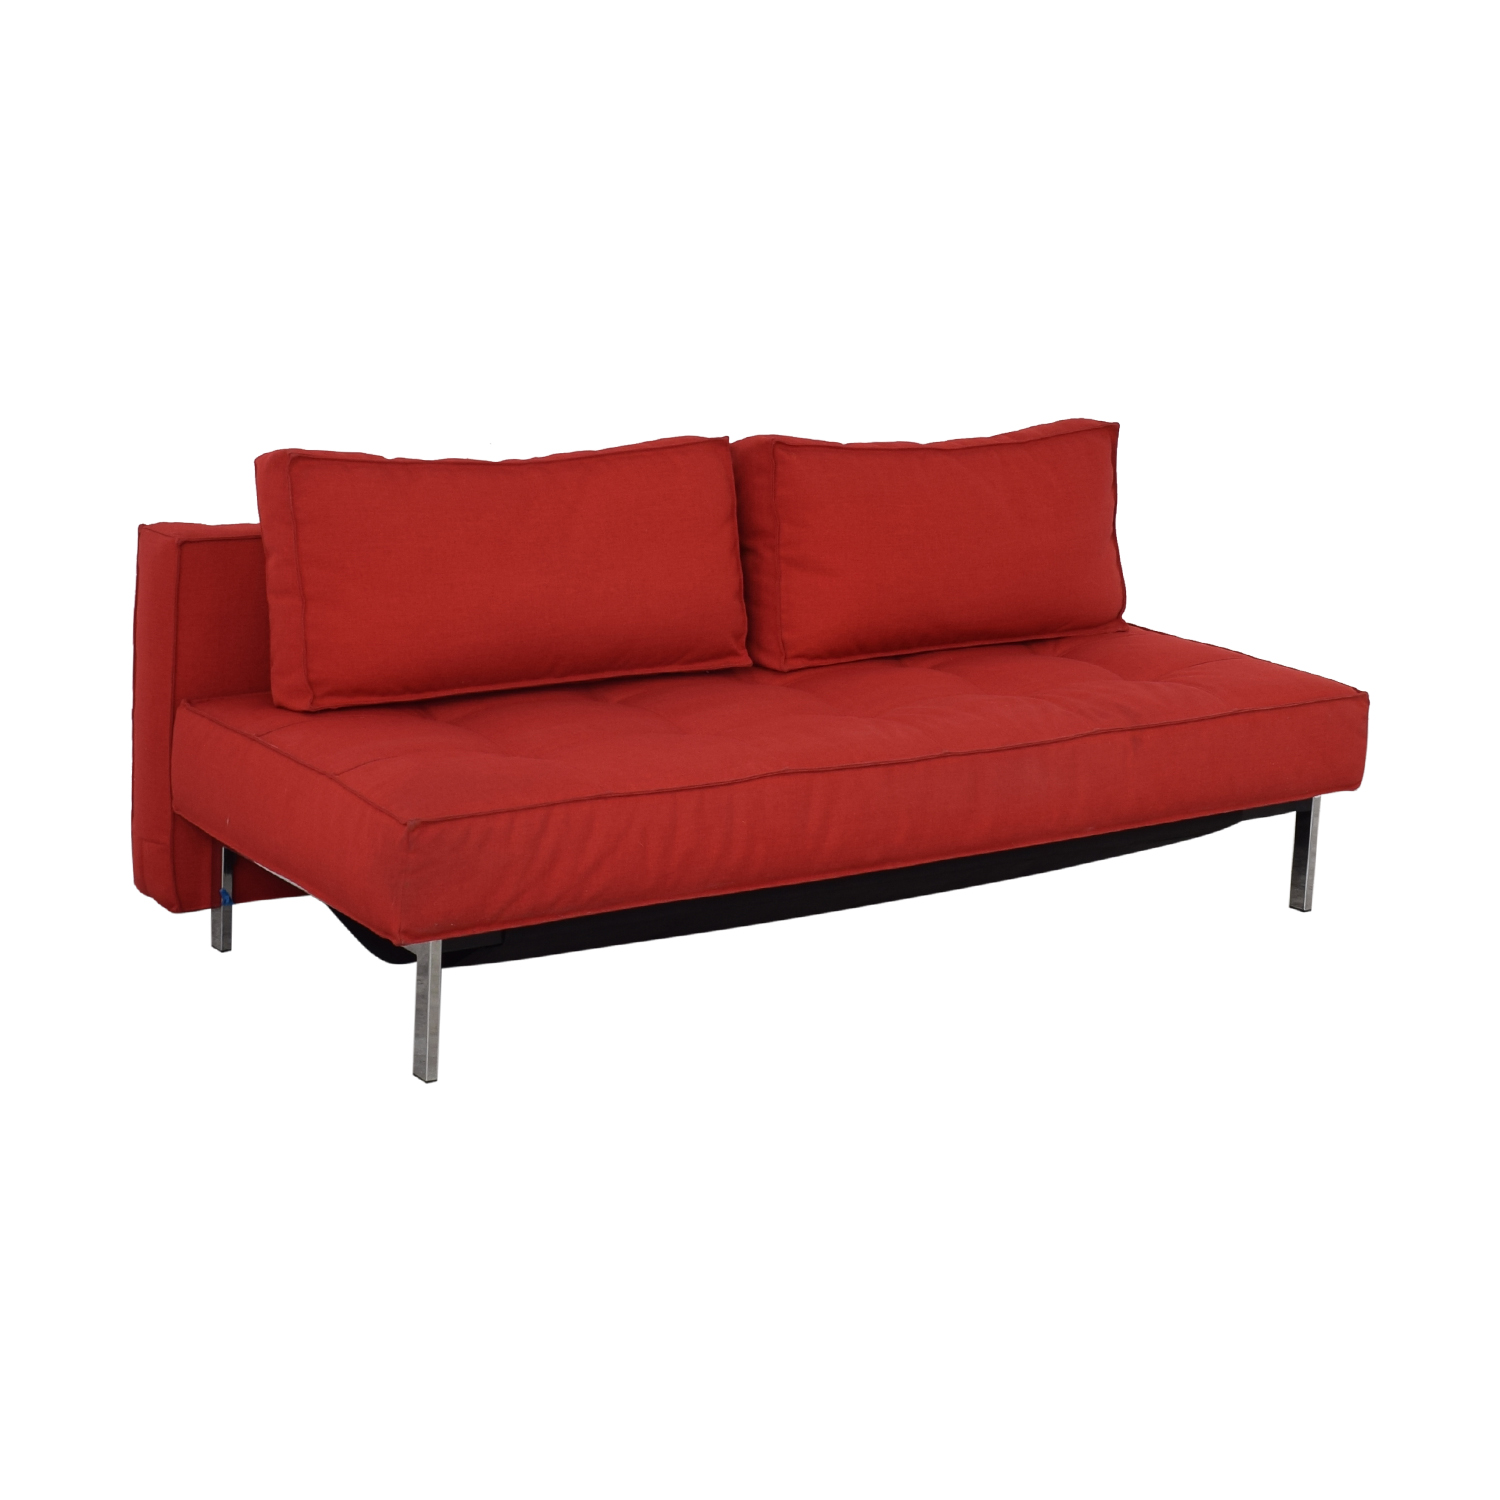 71 Off Innovation Living Innovation Living Red Tufted